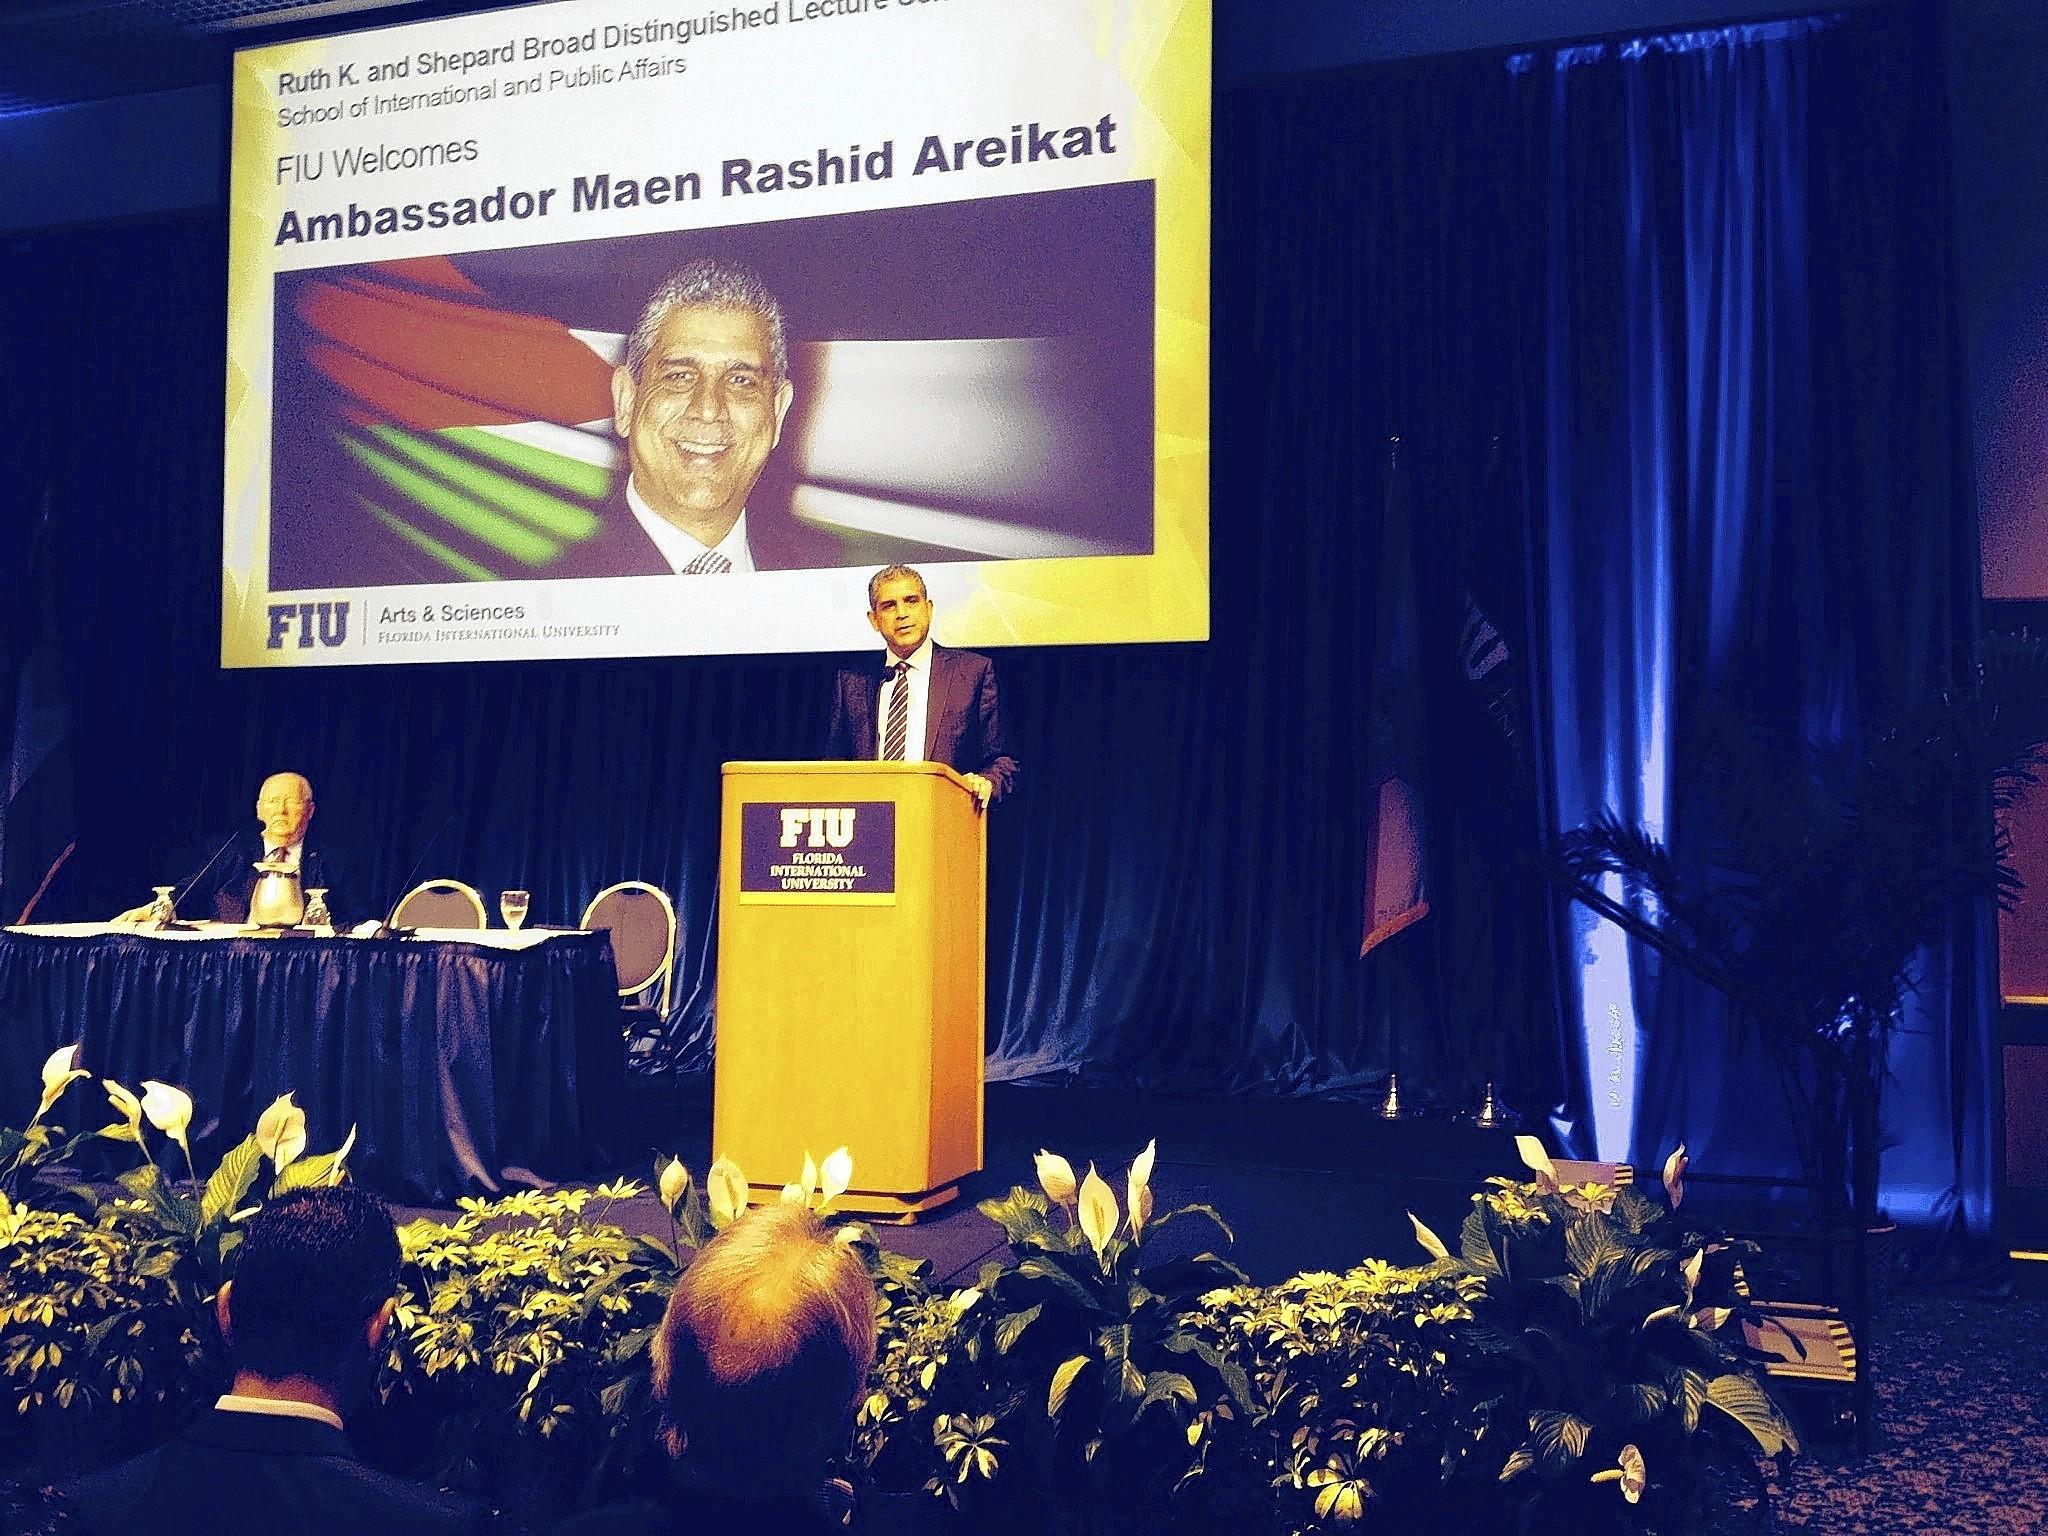 Maen Rashid Areikat, the Palestinian ambassador to the United States, speaks at FIU.